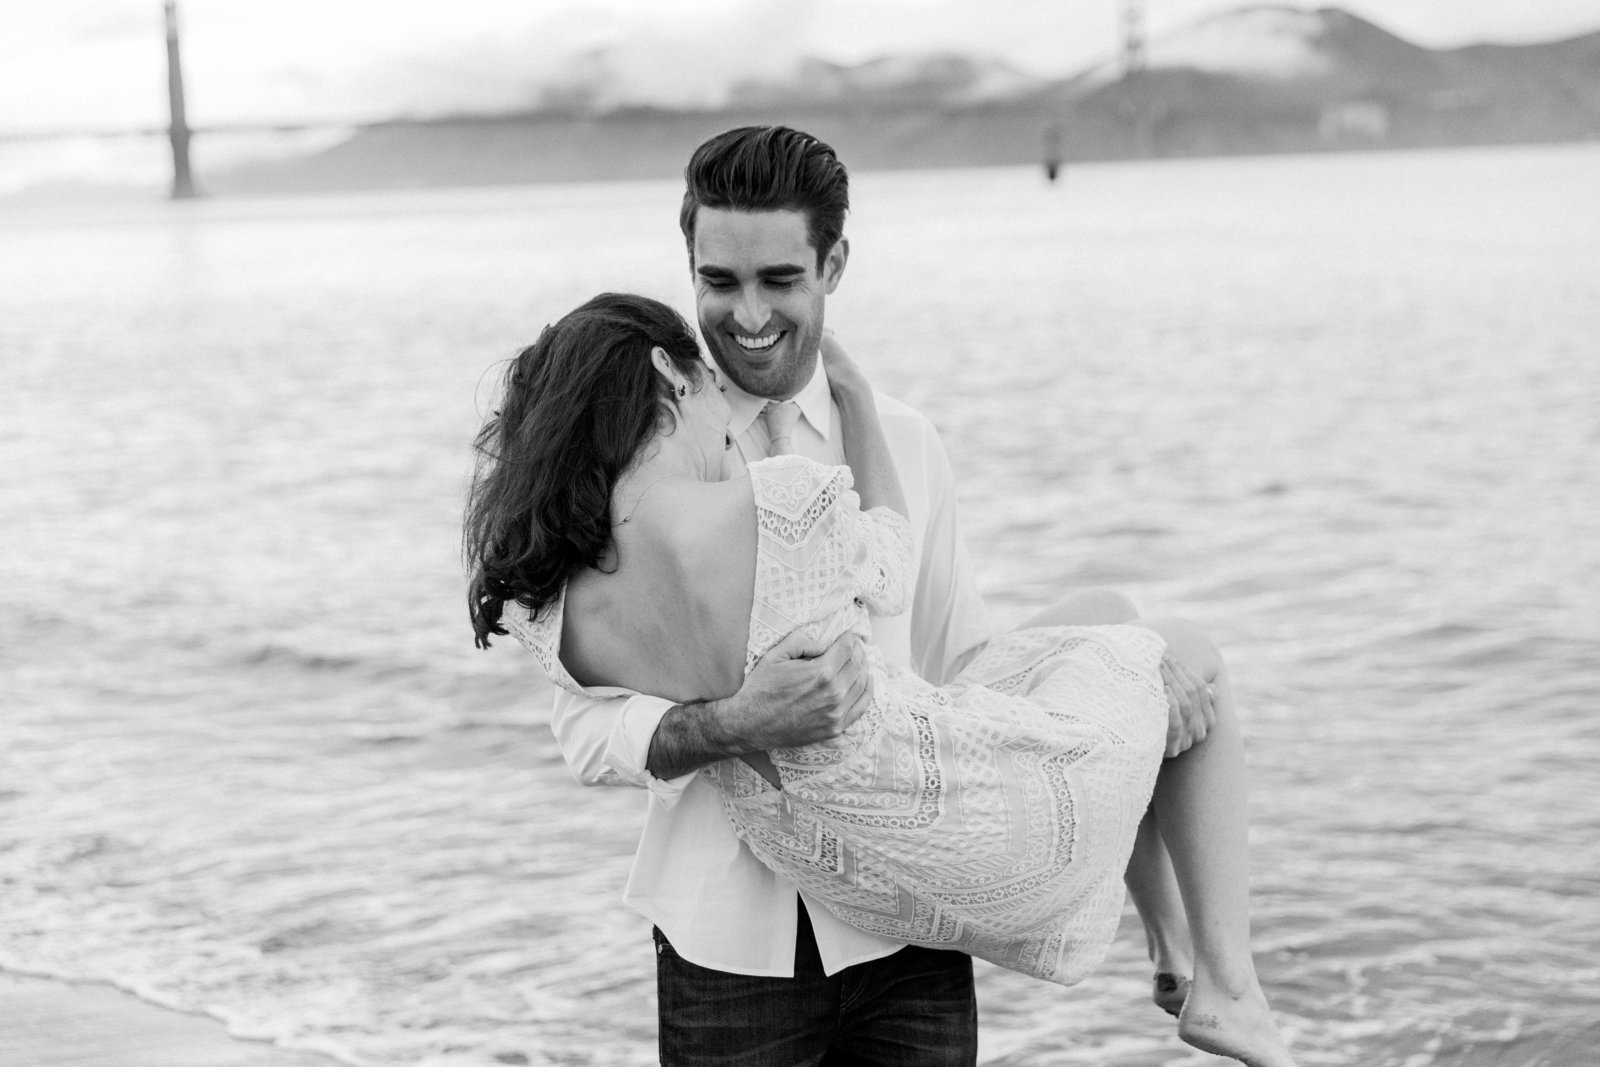 029-larissa-cleveland-engaged-wedding_photographer-san-francisco-carmel-napa-california-LC2_8781